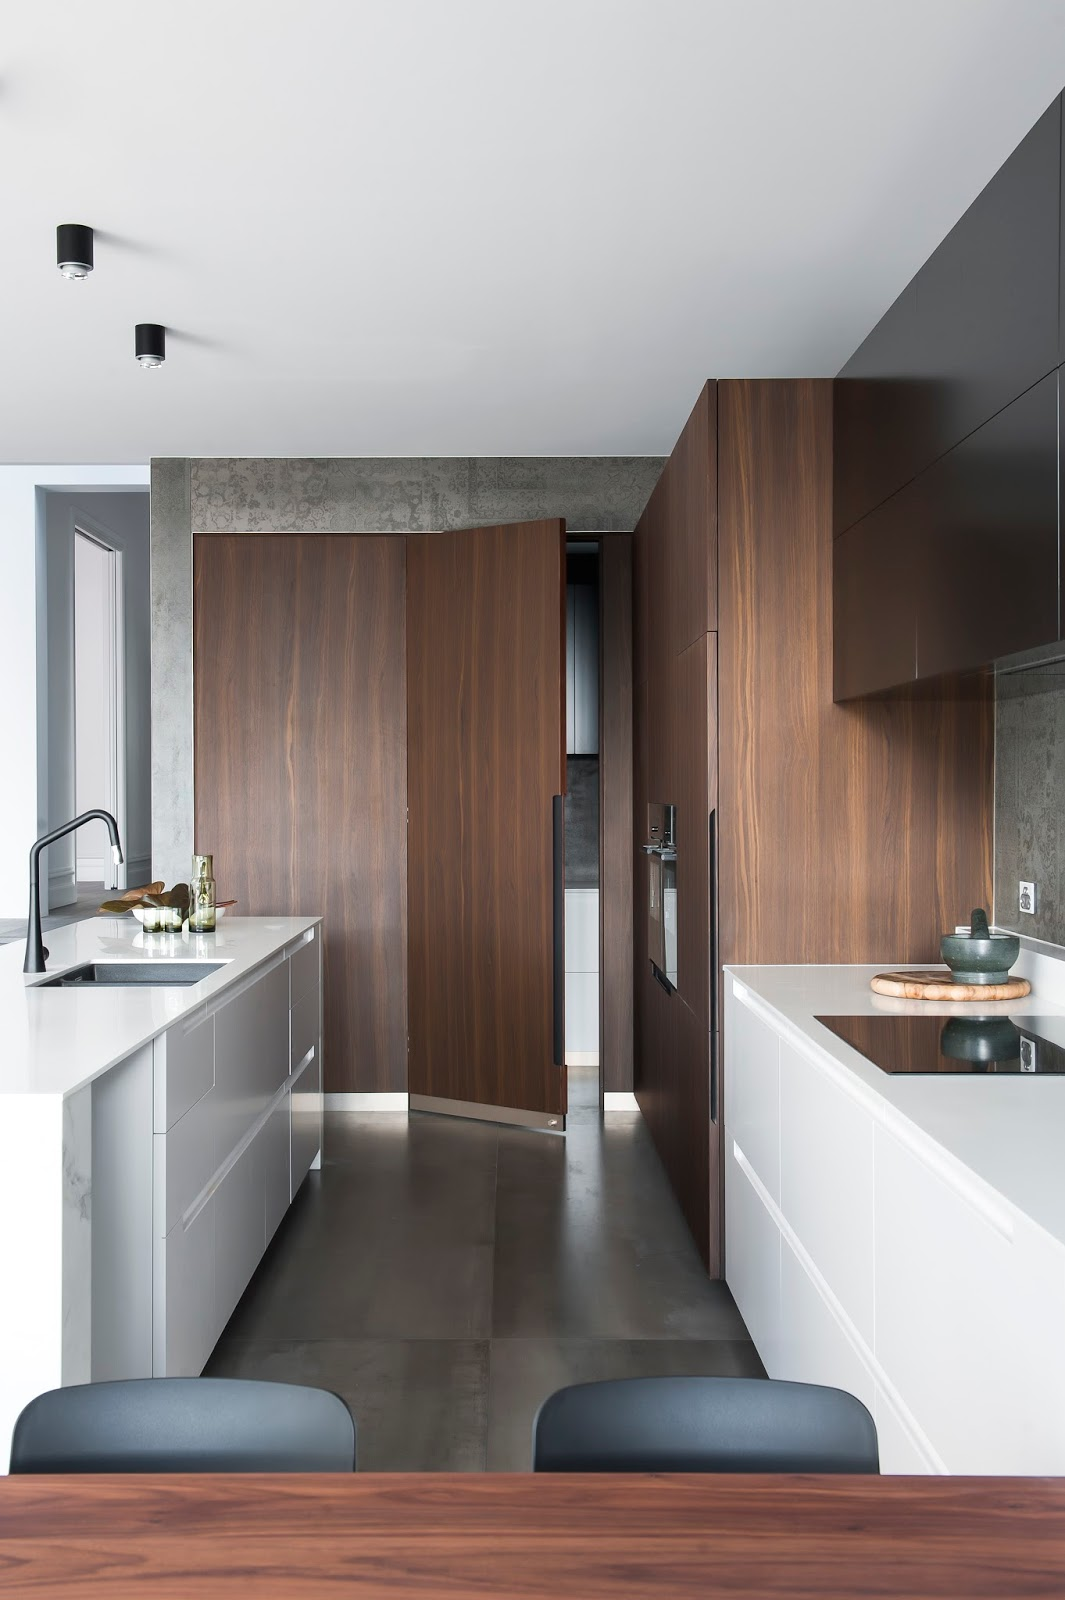 Minosa Amazing Kitchen Design Leaves Us With House Envy - Modern kitchen and bathroom designs